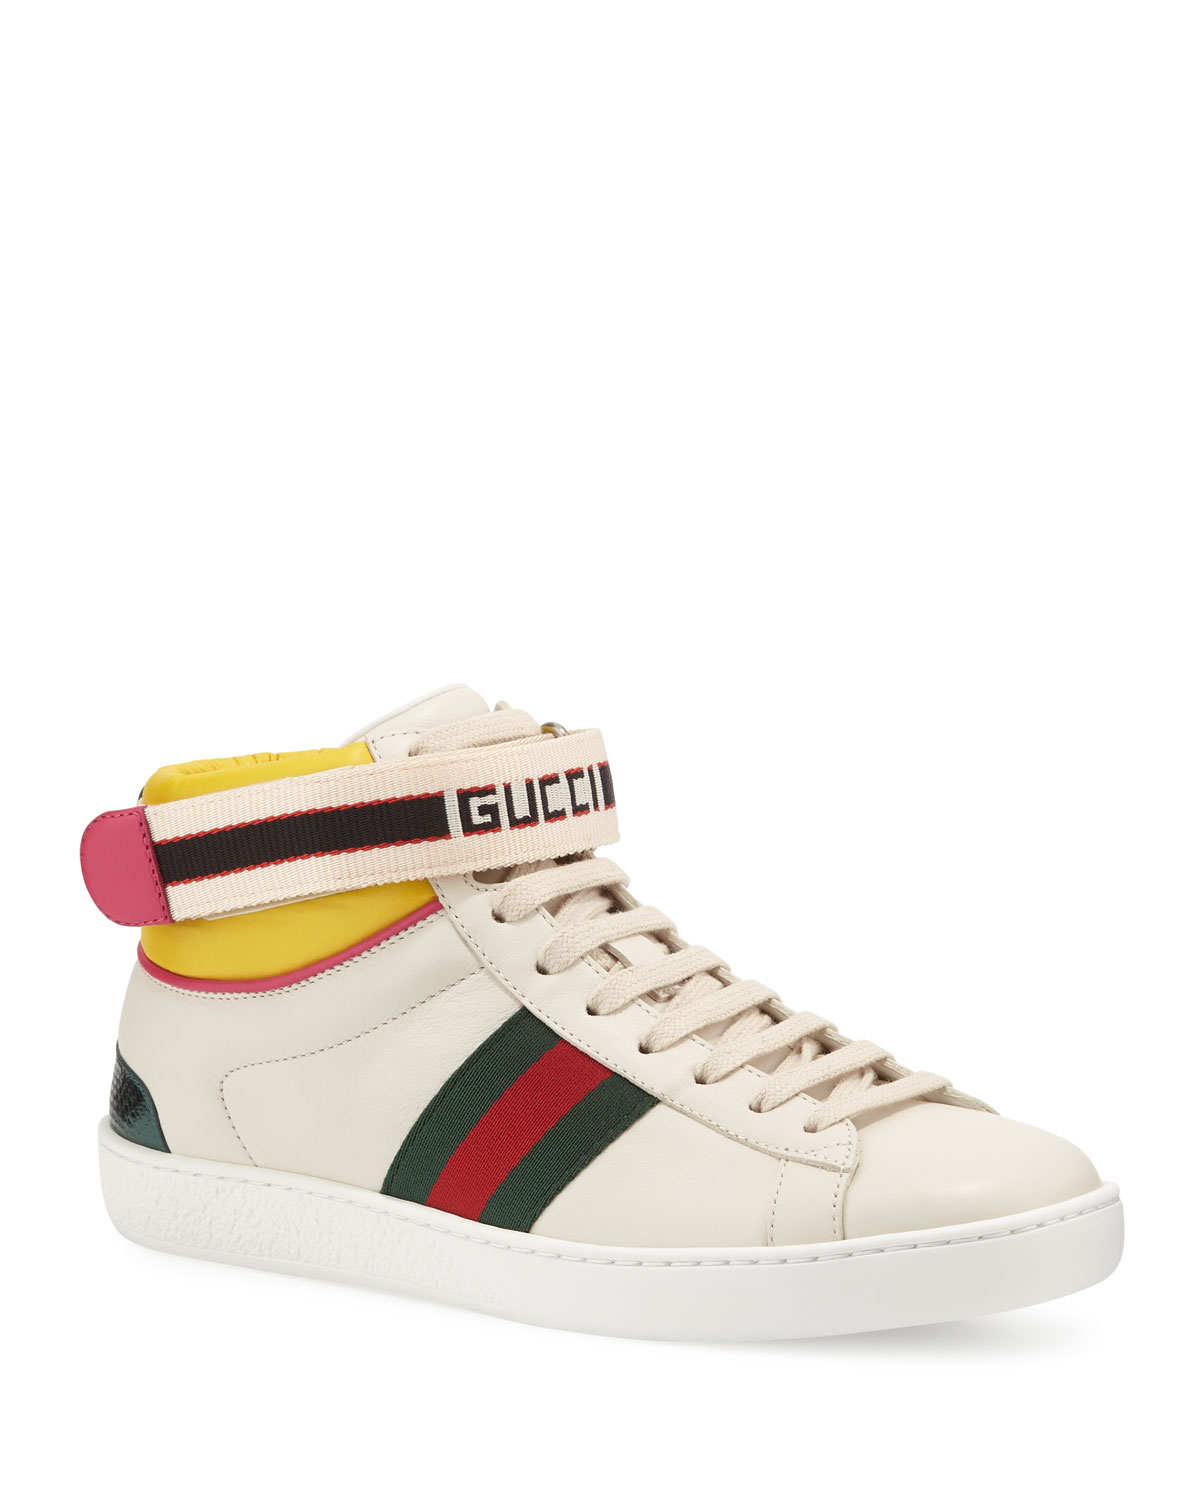 47d699c991f Gucci New Ace High Leather Sneaker With Strap